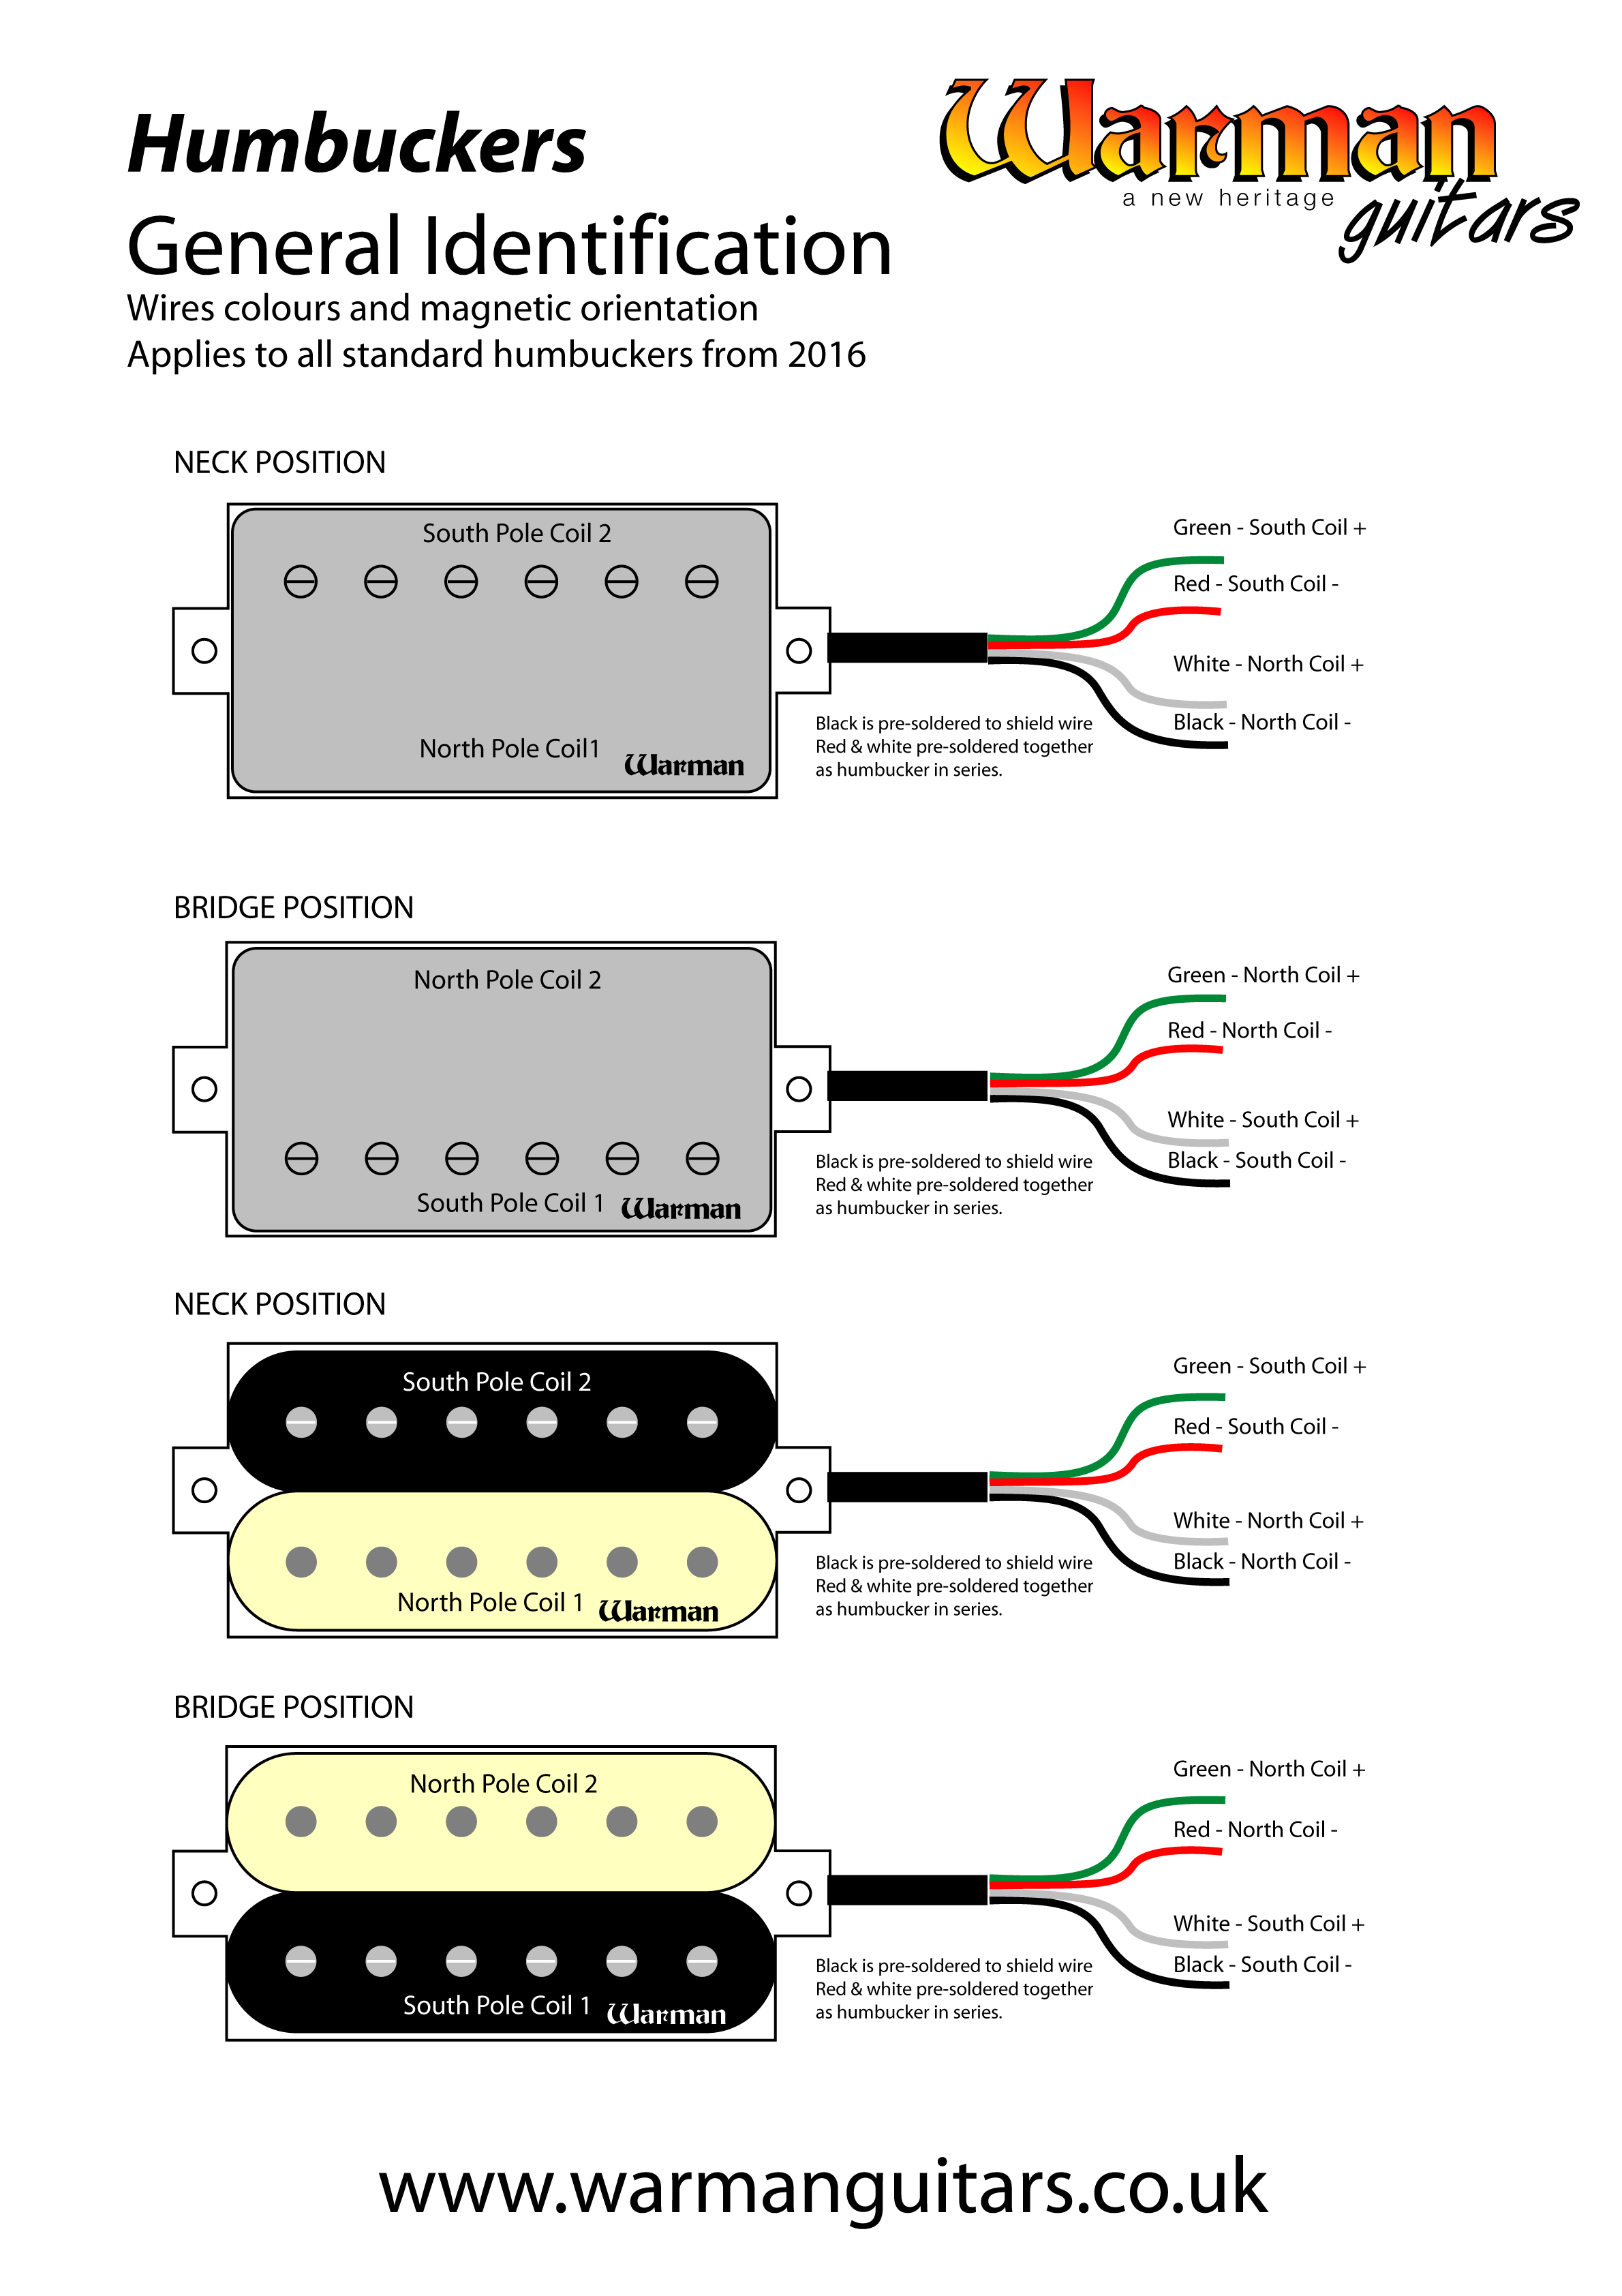 Humbucker wire colours – Warman GuitarsWarman Guitars